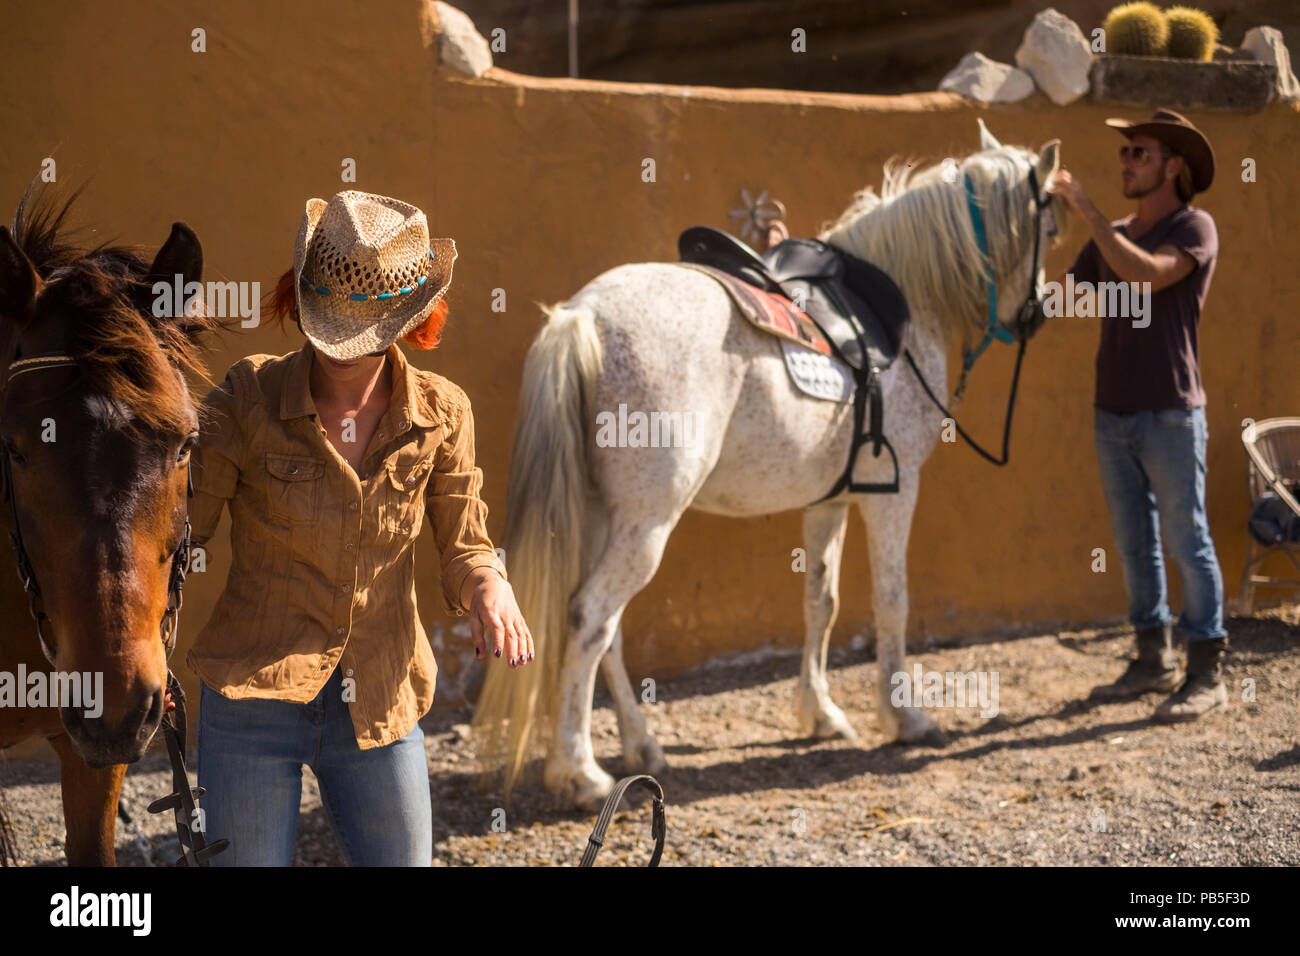 couple in countryside prepare horses to go outdoor traveling and discover new plces in excursion. ntaural outdoor lifestyle for happiness and pet ther Stock Photo